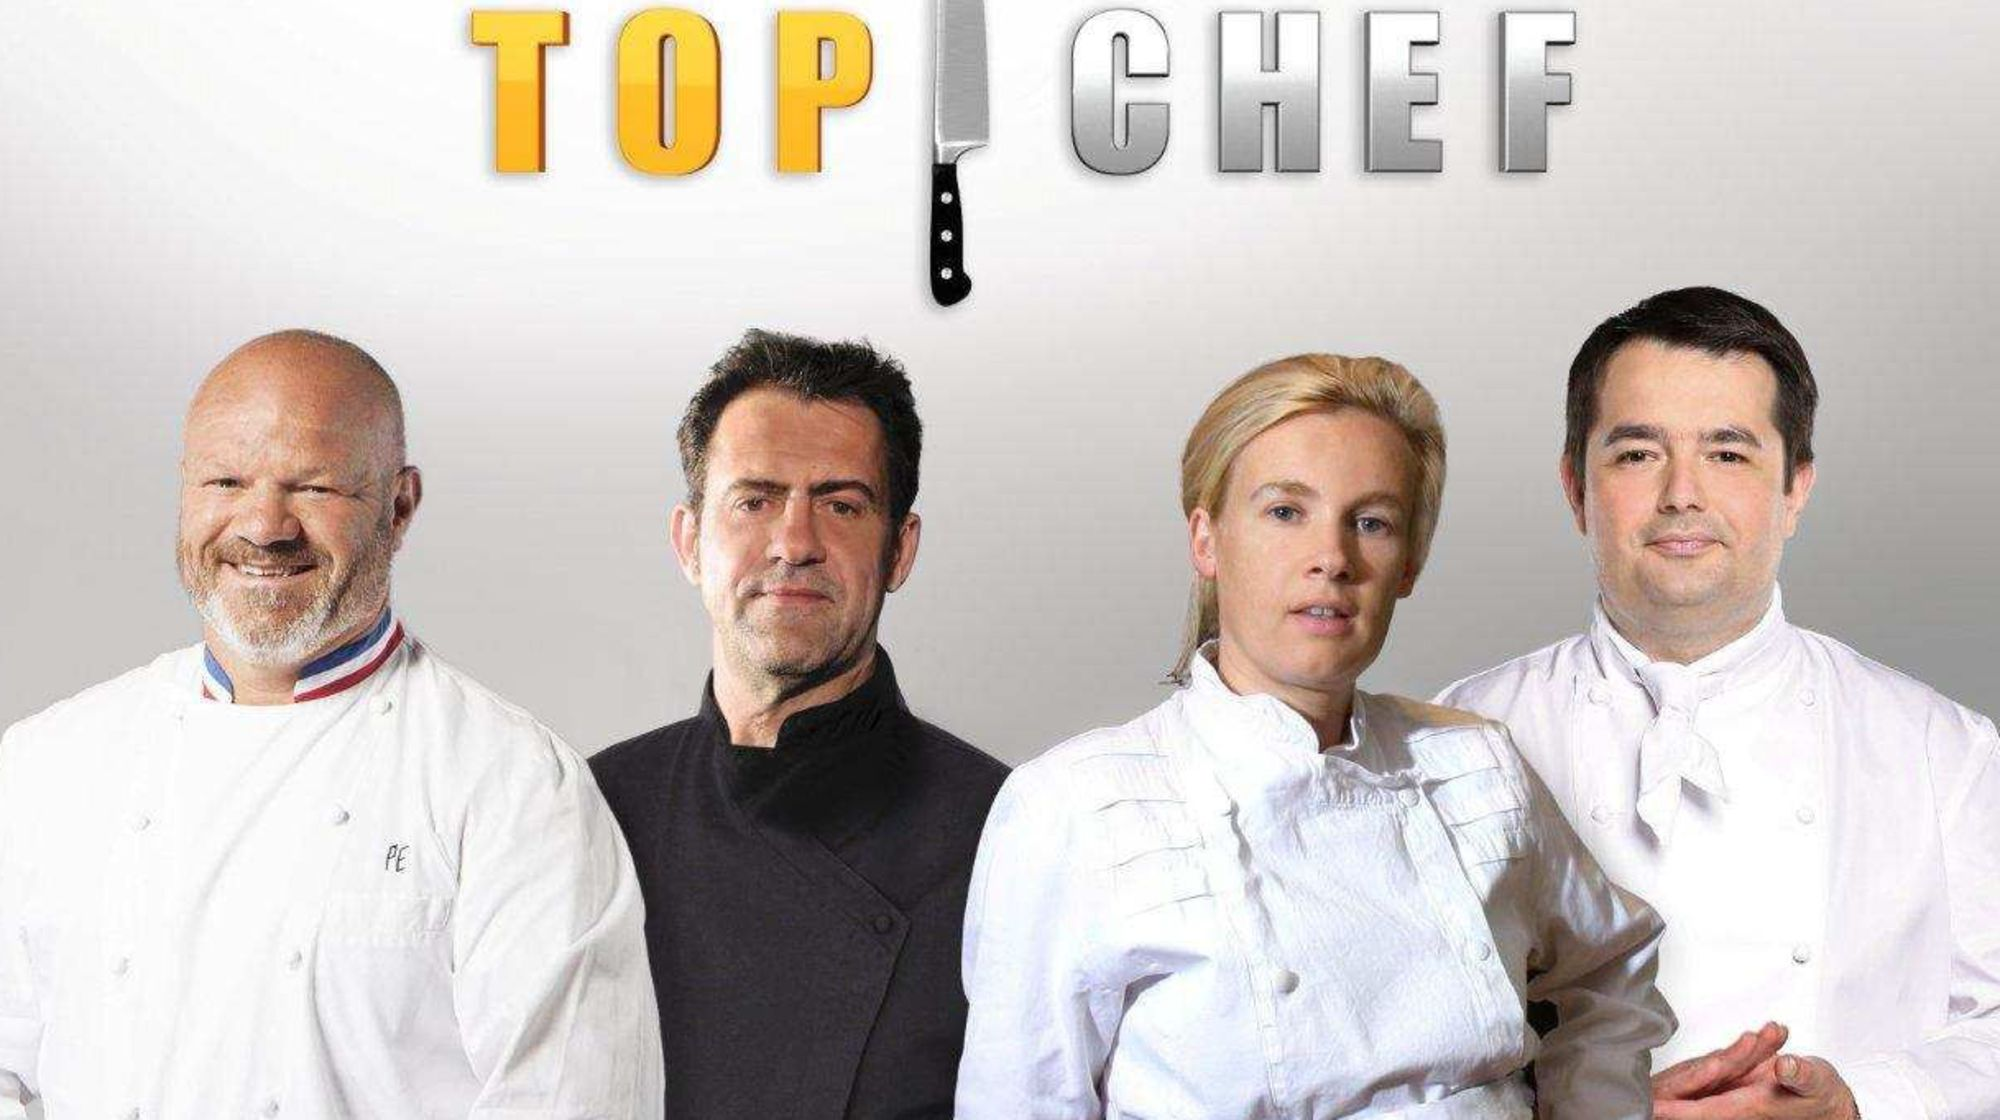 M6 r pond la critique de jm cohen sur l 39 mission top - Poele de top chef ...